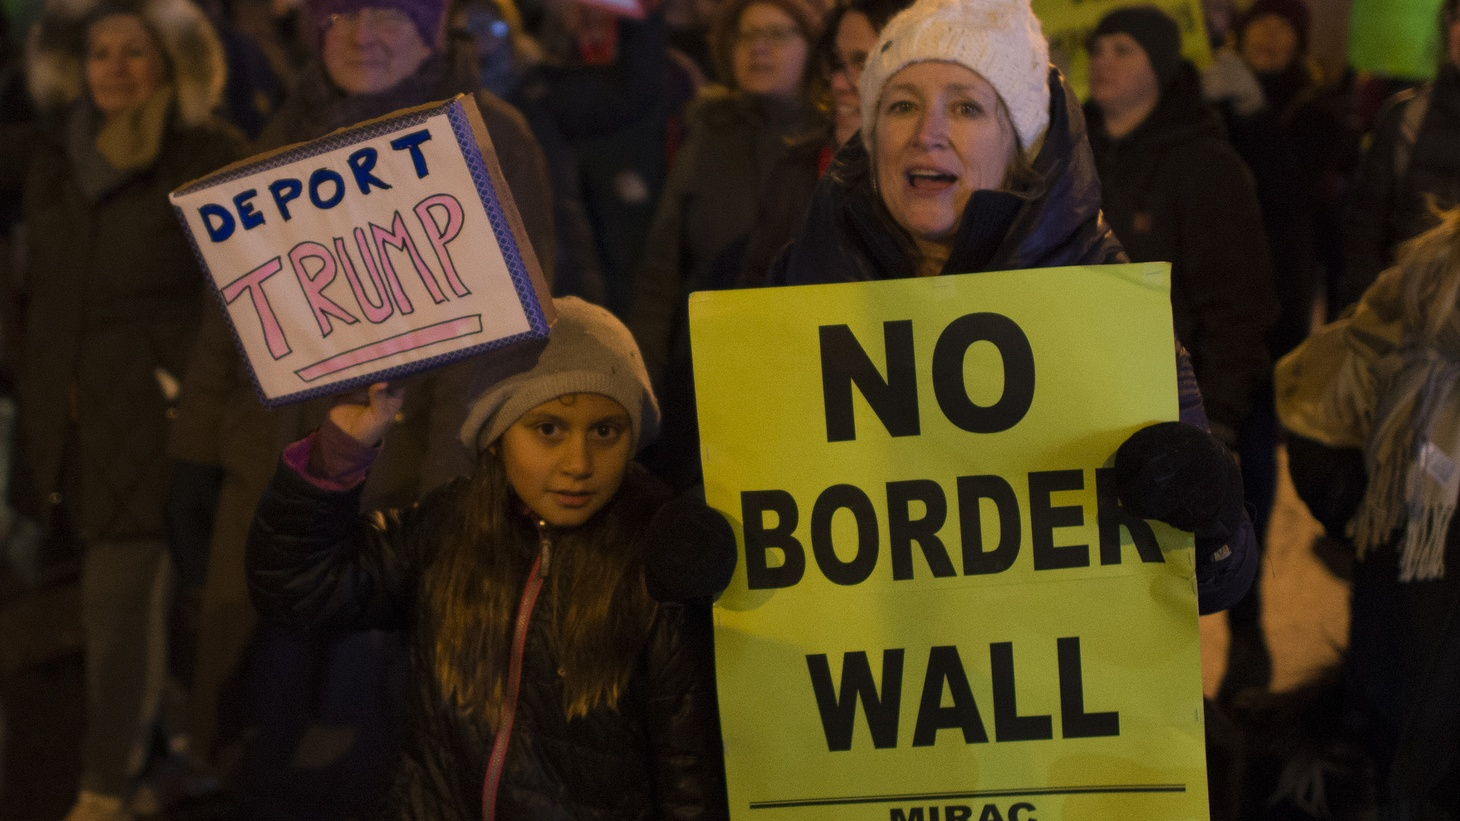 About 300 people met in south Minneapolis to march in protest against the proposed policies of Donald Trump.